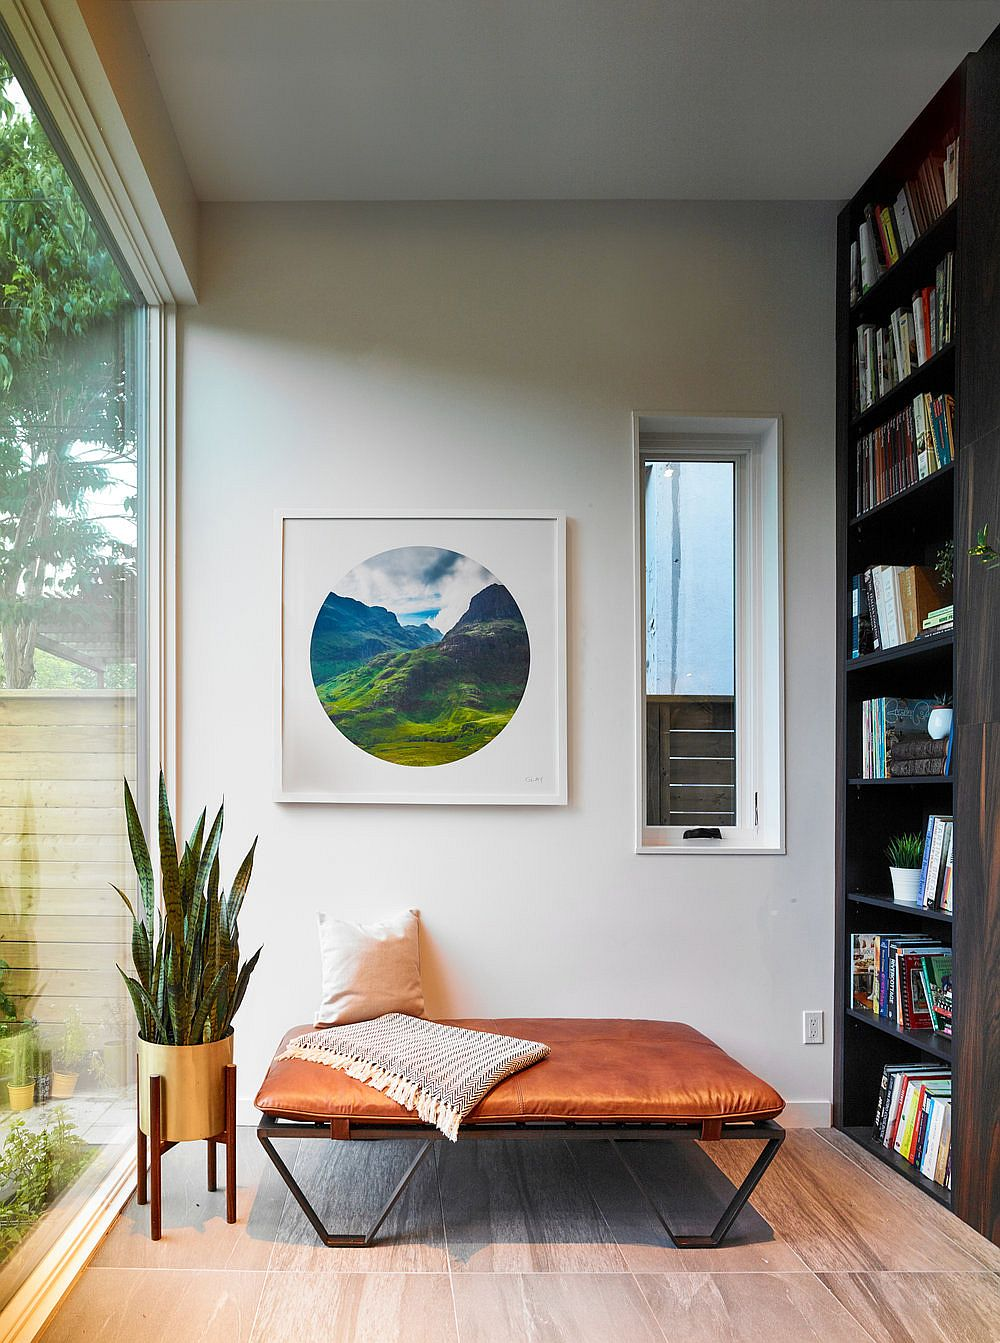 Bookshelf-and-lovely-reading-space-with-a-view-of-the-backyard-28313